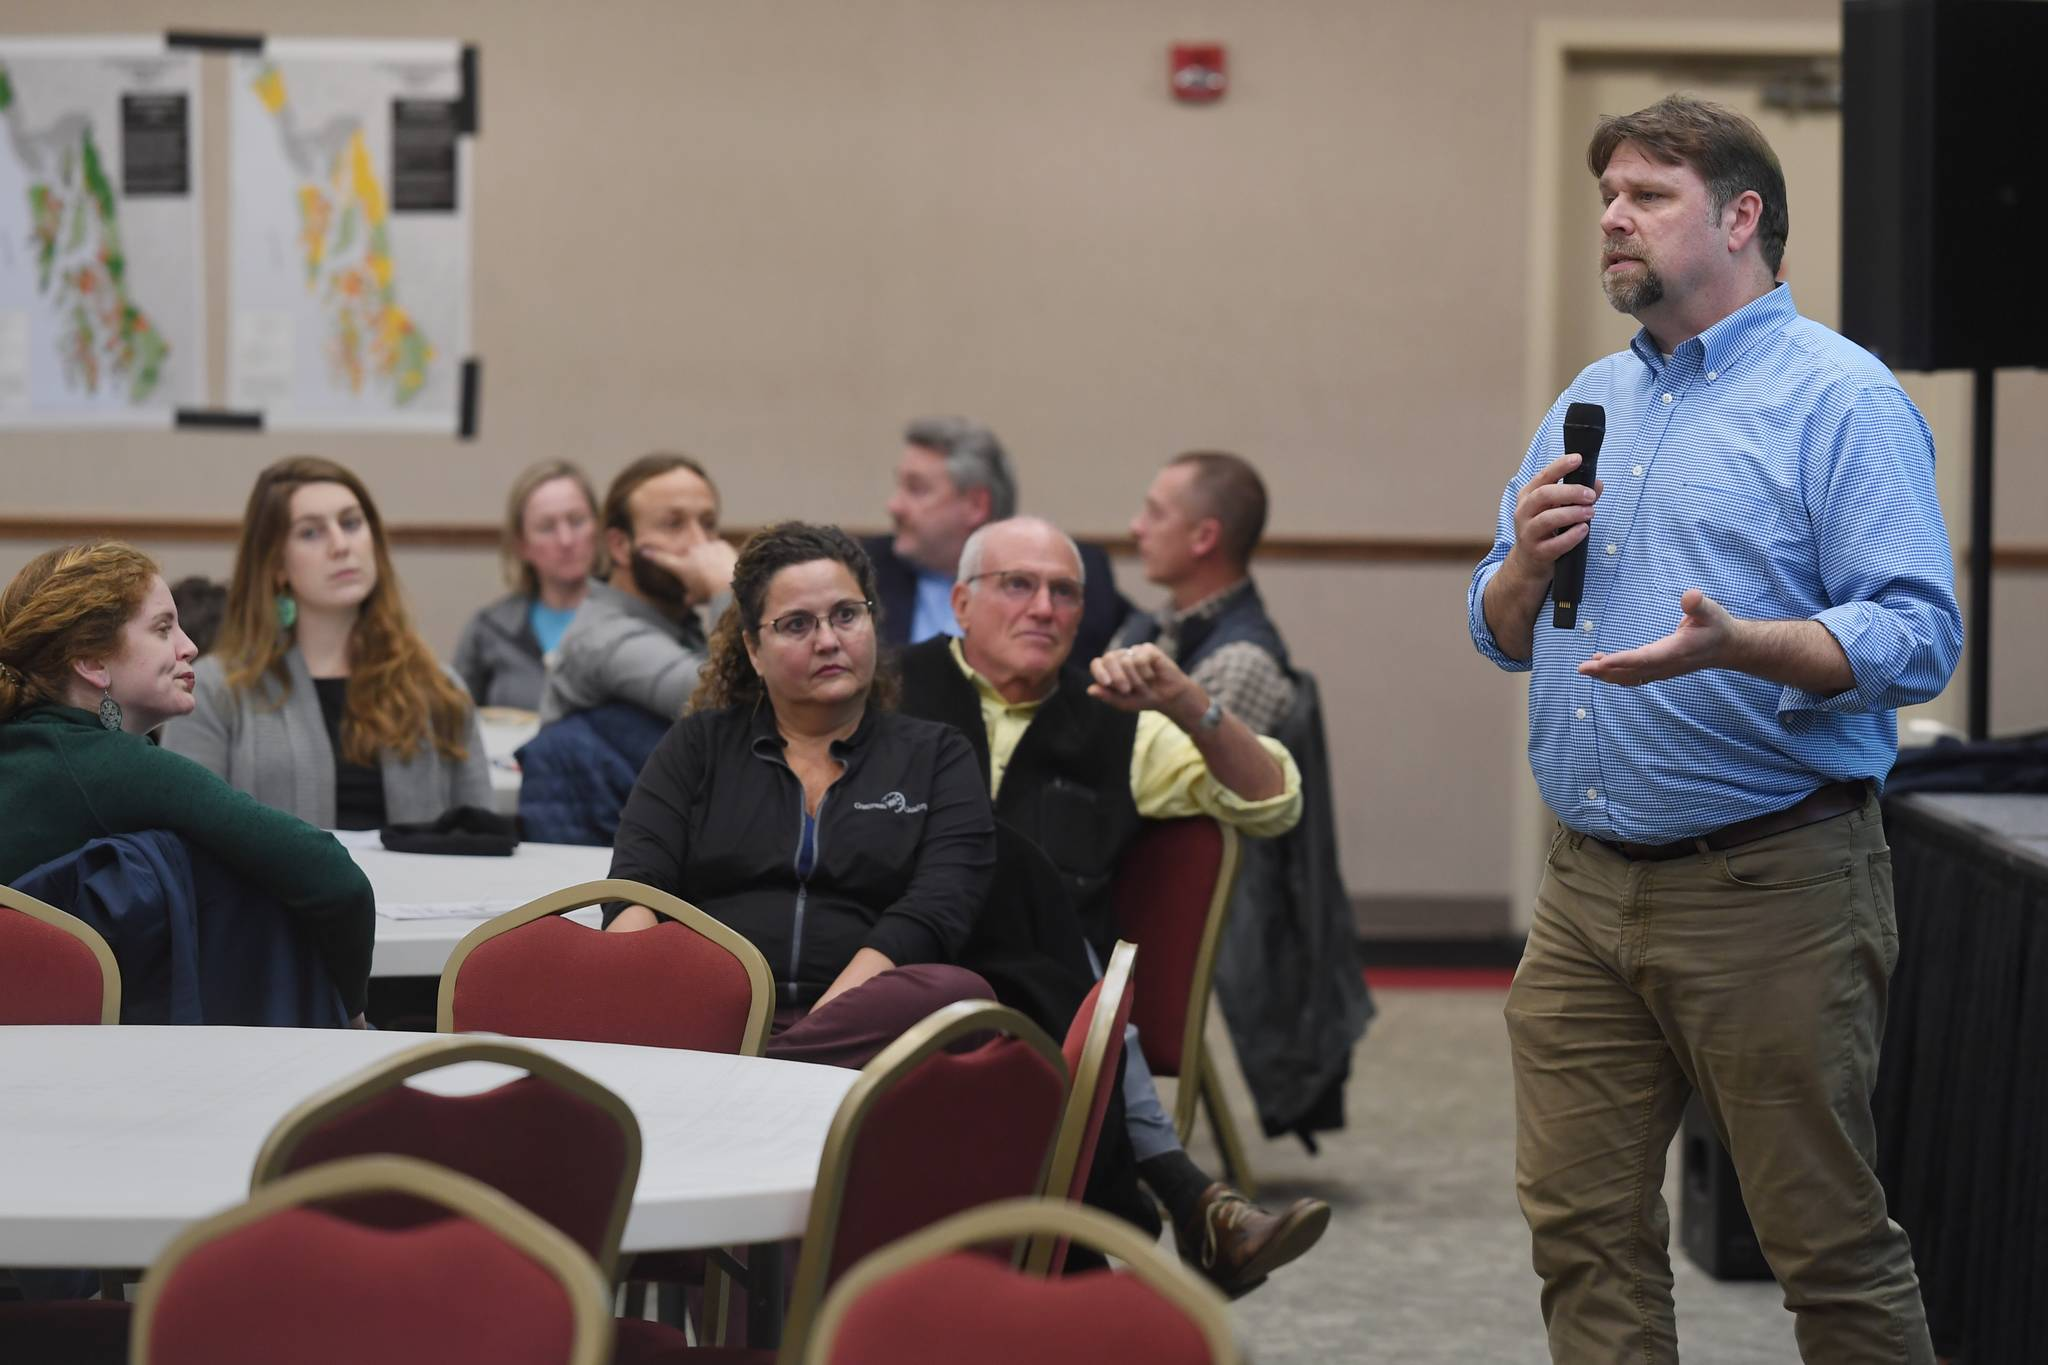 National Forest System Deputy Chief Chris French speaks to a full room During an informational meeting on the U. S. Forest Service's Roadless Rule at the Elizabeth Peratrovich Hall on Monday, Nov. 4, 2019. (Michael Penn | Juneau Empire)